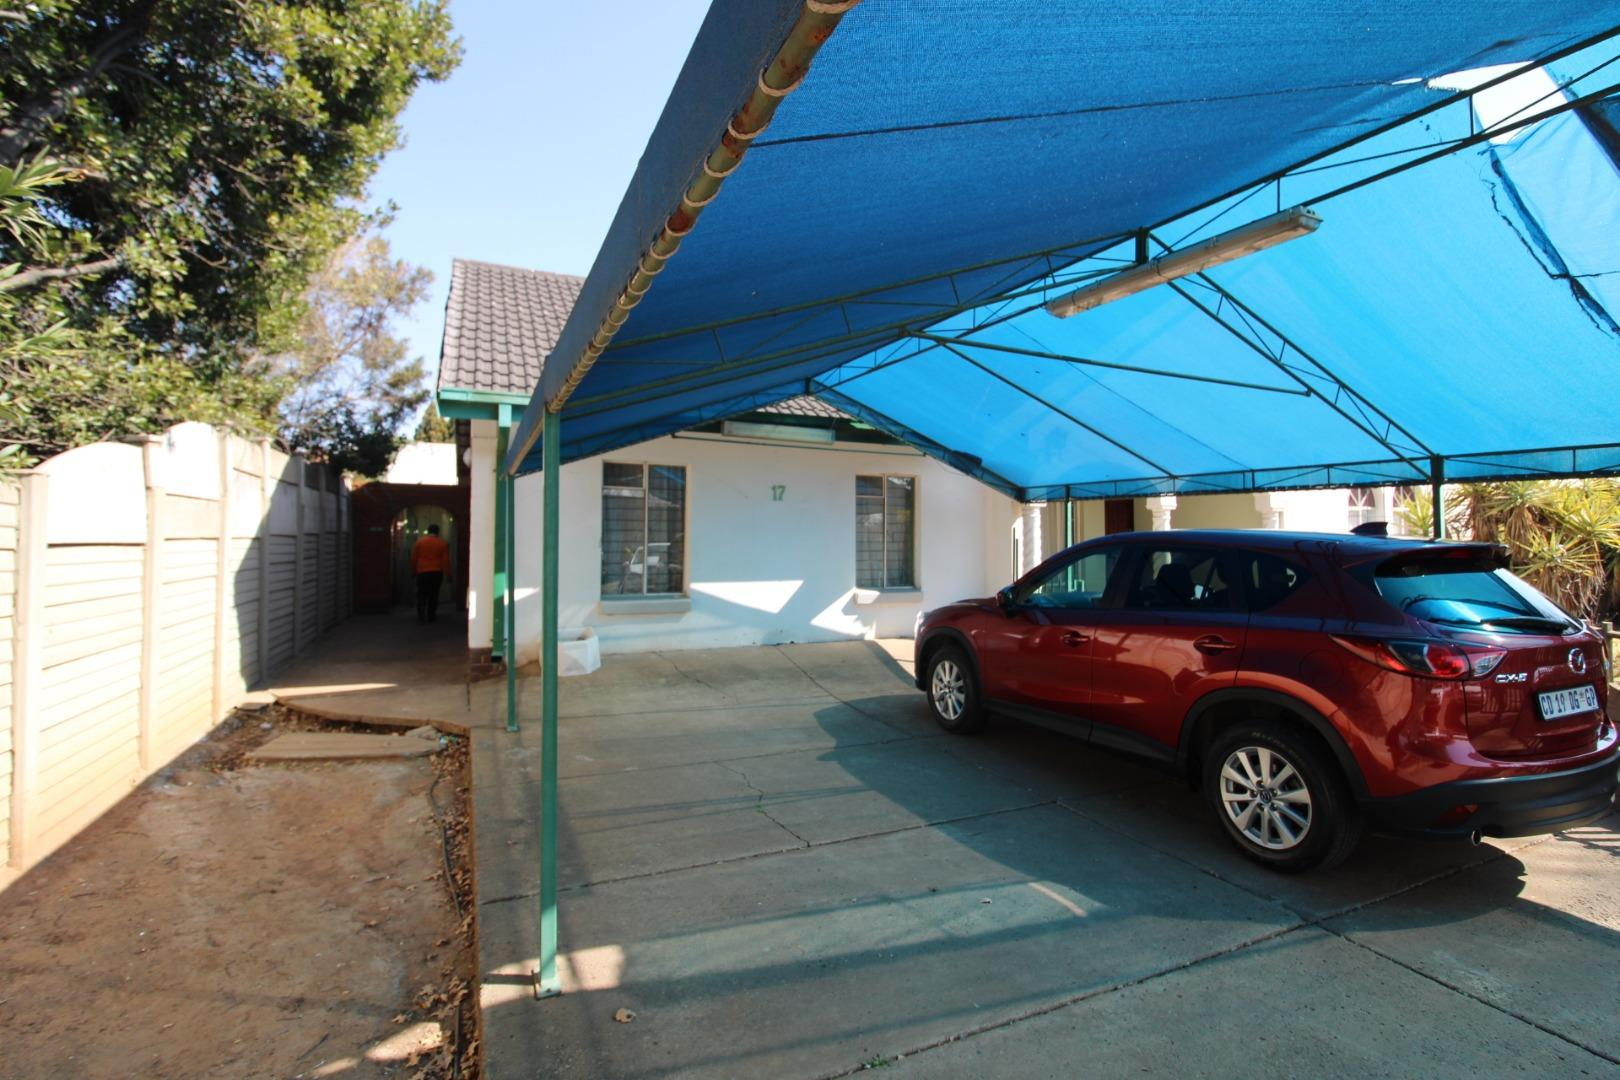 17 Bedroom Student Accommodation for Sale in Vanderbijlpark SE 7, Vanderbijlpark - Gauteng